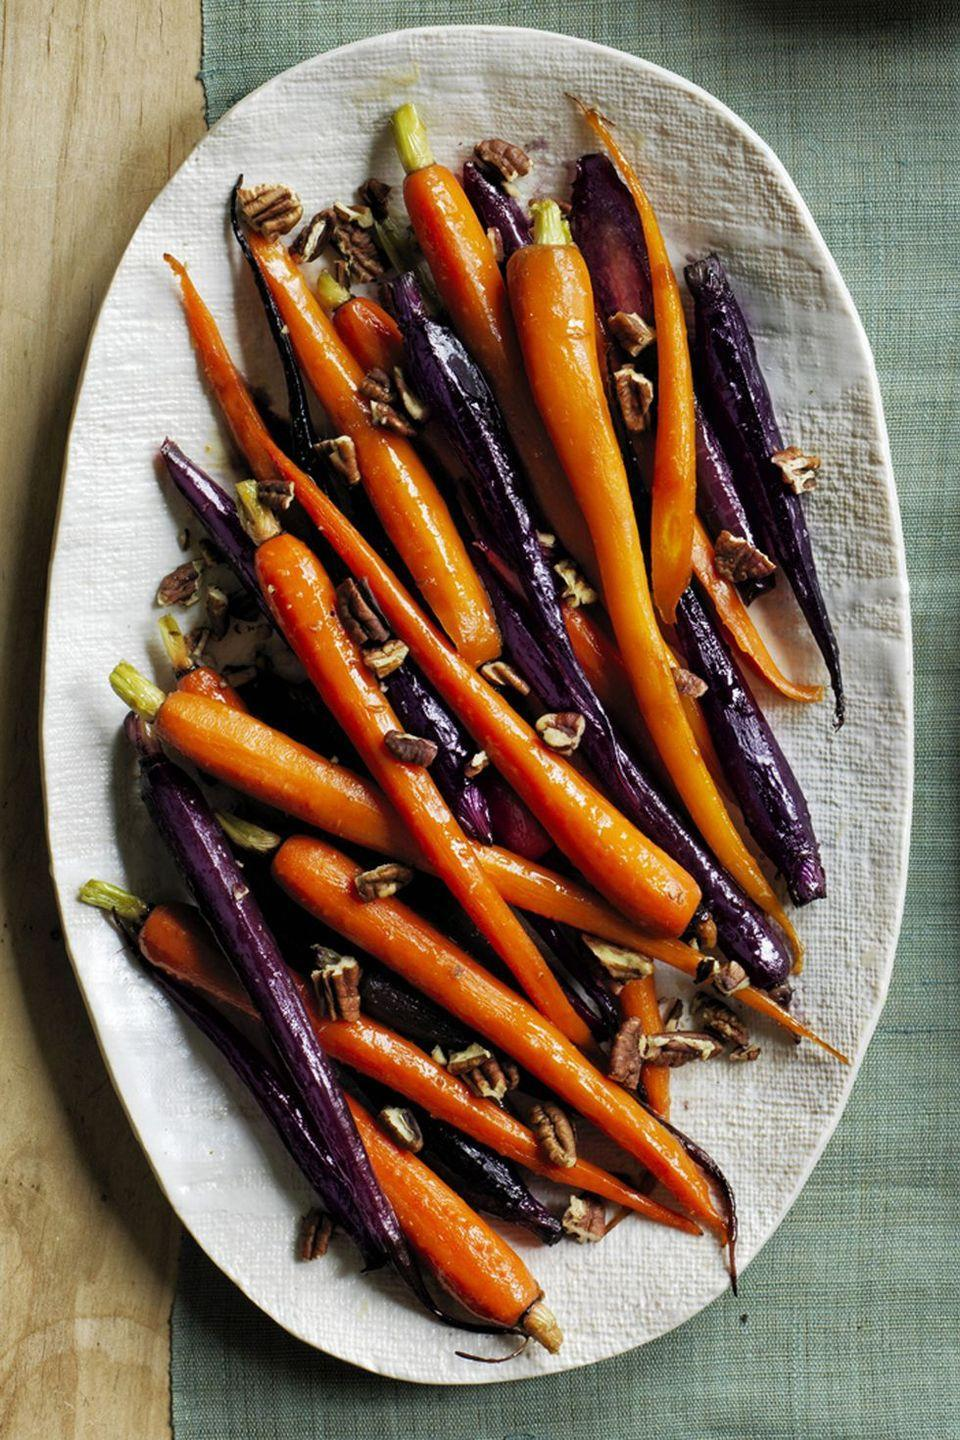 "<p>These carrots are sweeter than pie ... literally.</p><p><em><a href=""https://www.womansday.com/food-recipes/food-drinks/recipes/a60500/pecan-pie-glazed-carrots-recipe/"" rel=""nofollow noopener"" target=""_blank"" data-ylk=""slk:Get the recipe from Woman's Day »"" class=""link rapid-noclick-resp"">Get the recipe from Woman's Day »</a></em></p>"